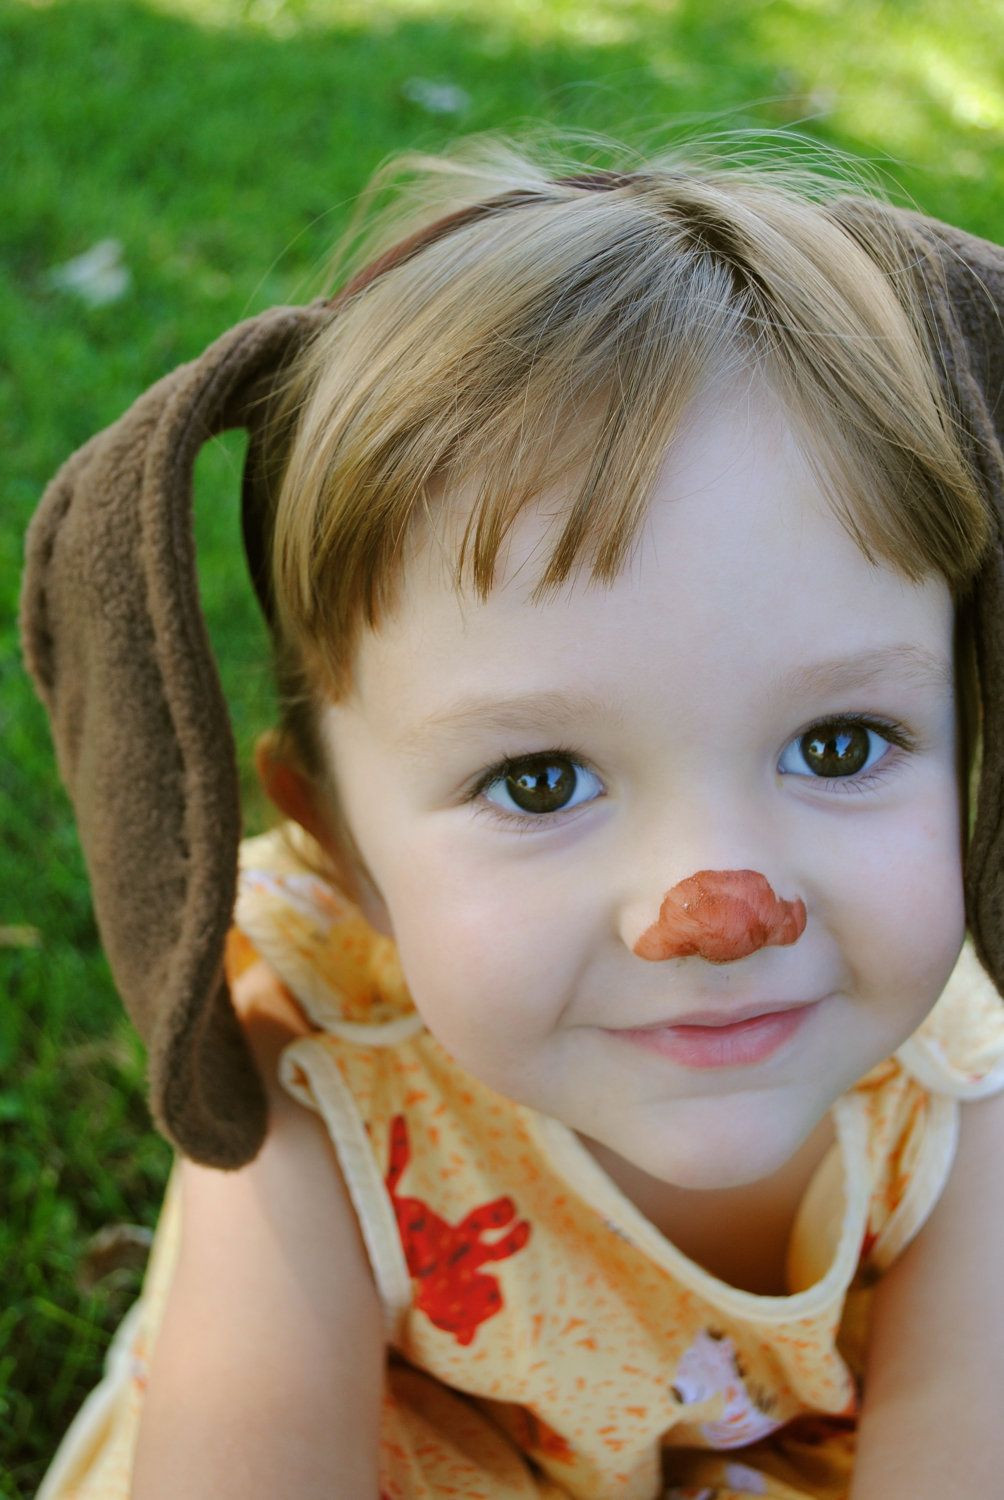 DIY Dog Costumes For Kids  Reserved Listing 2 Kids Puppy Ears and Tails